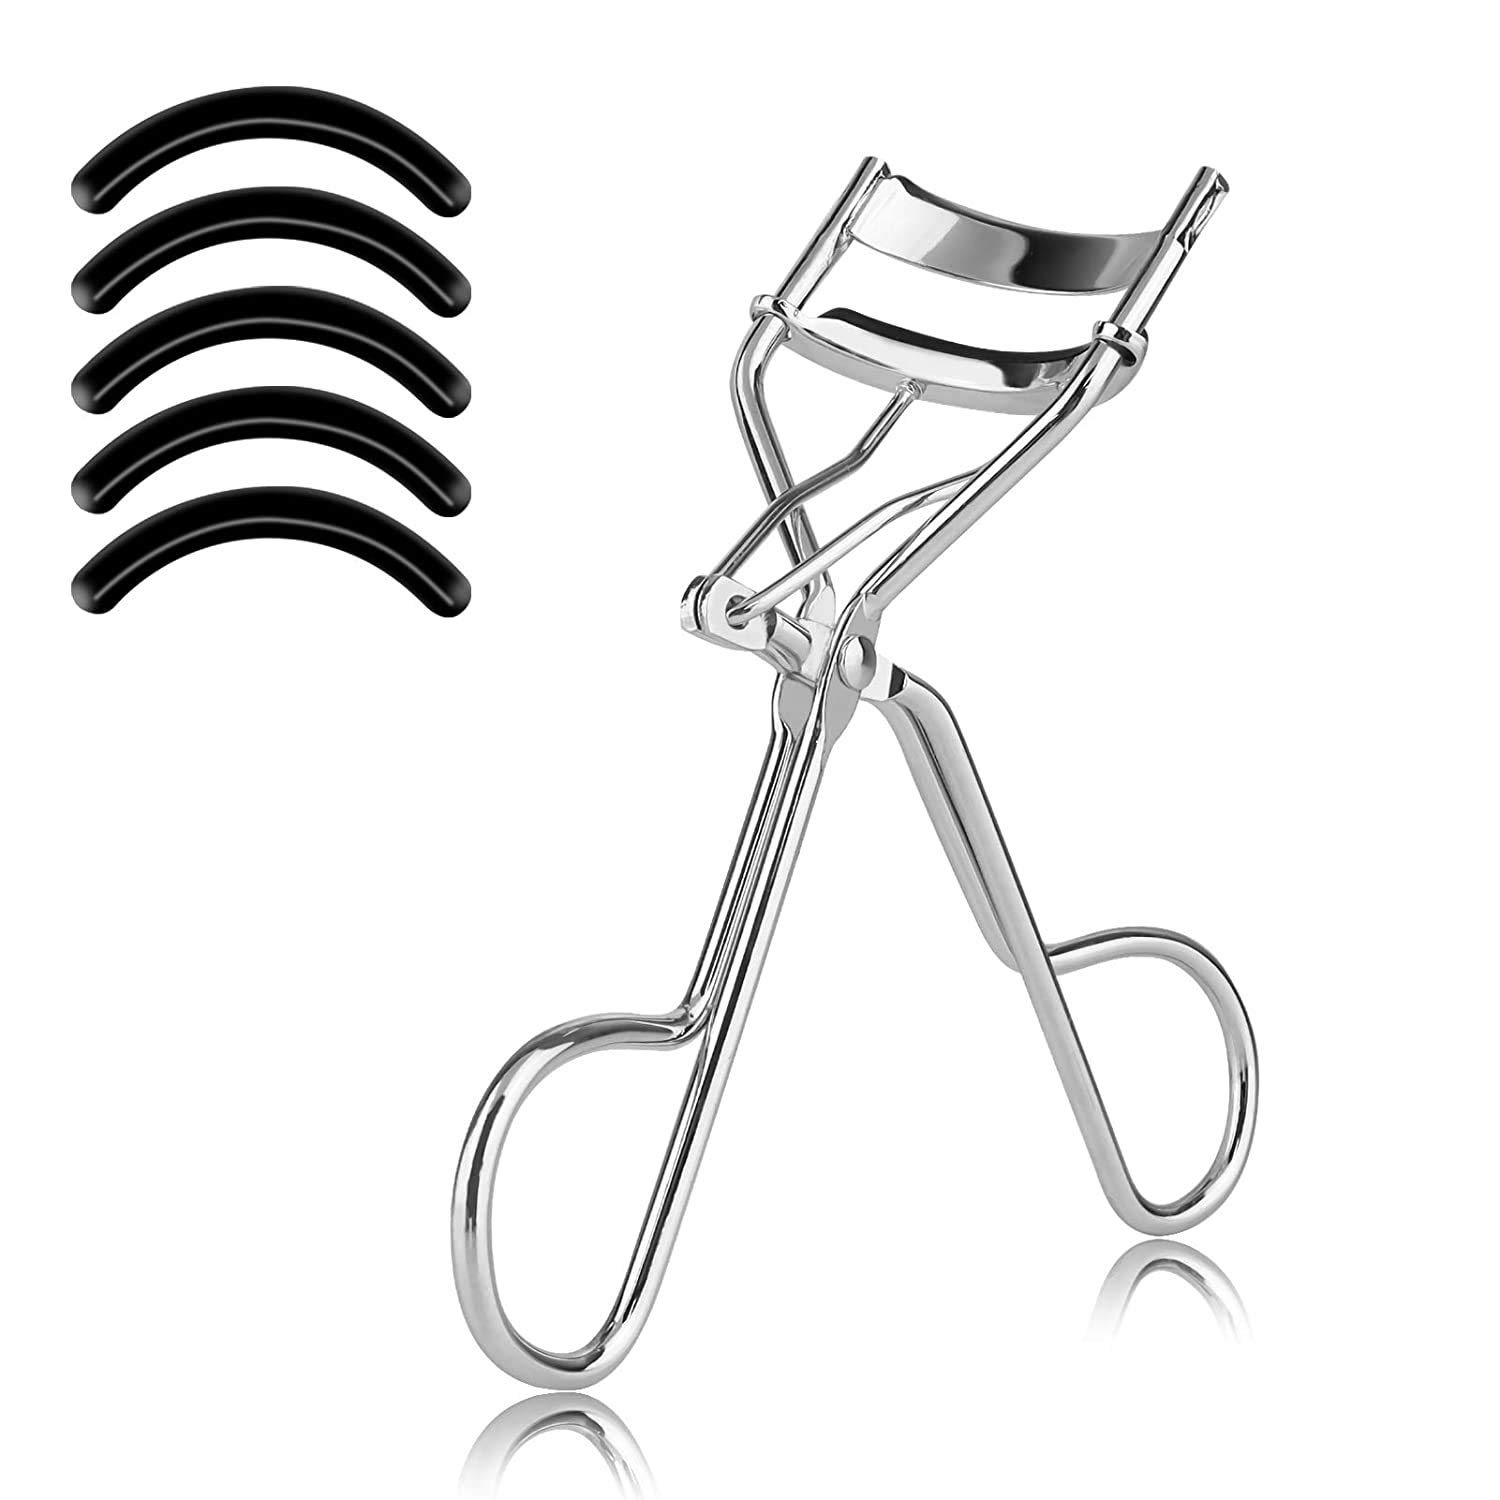 National products SFASTER Eyelash Curler with 5PCS Pad OFFicial store Las Curved Silicone Refill